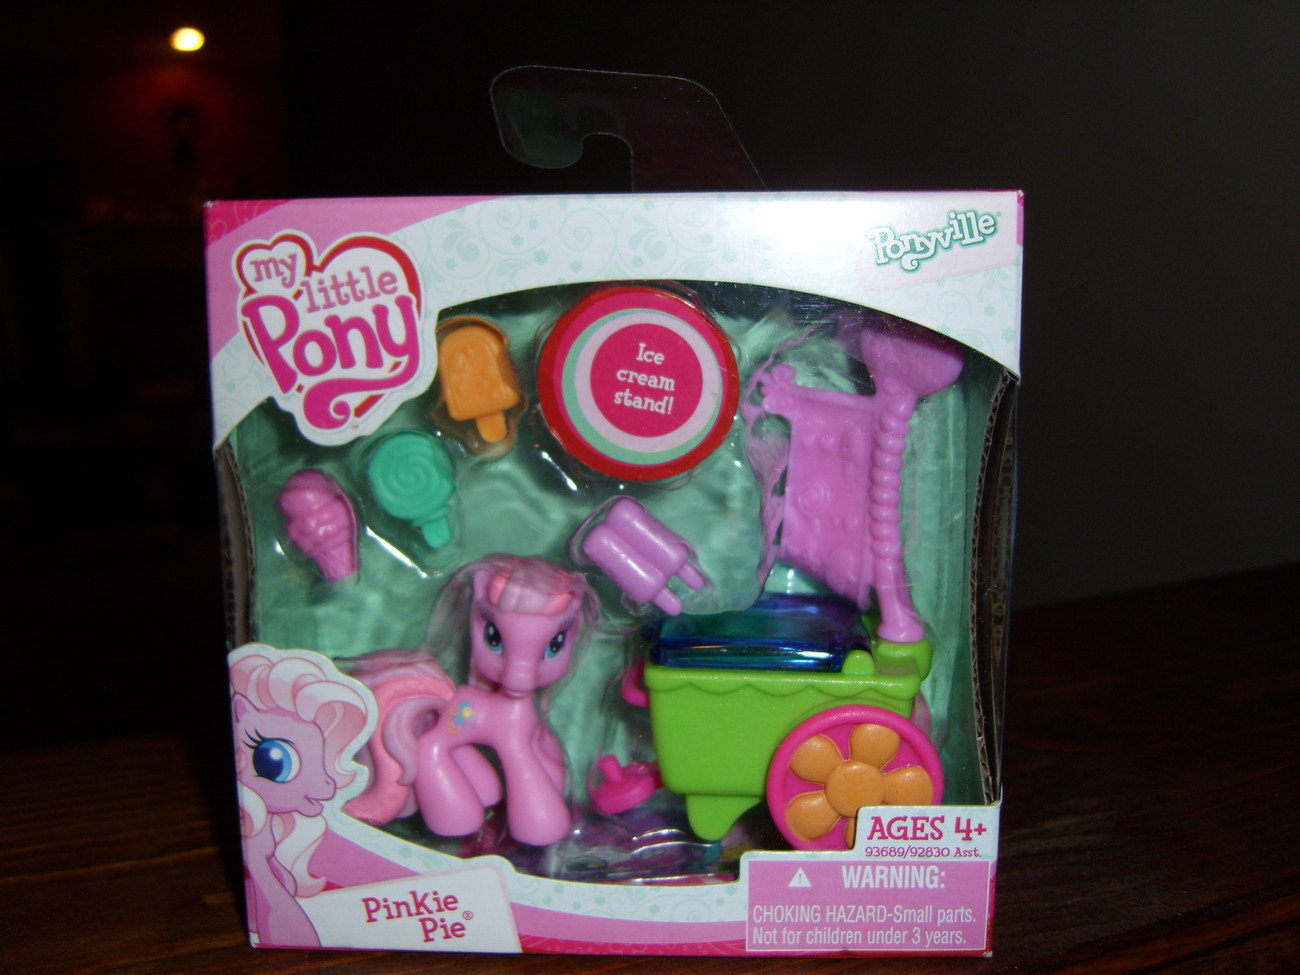 My Little Pony G3 MIB ponyville G3.5 Pinkie Pie Ice Cream Stand